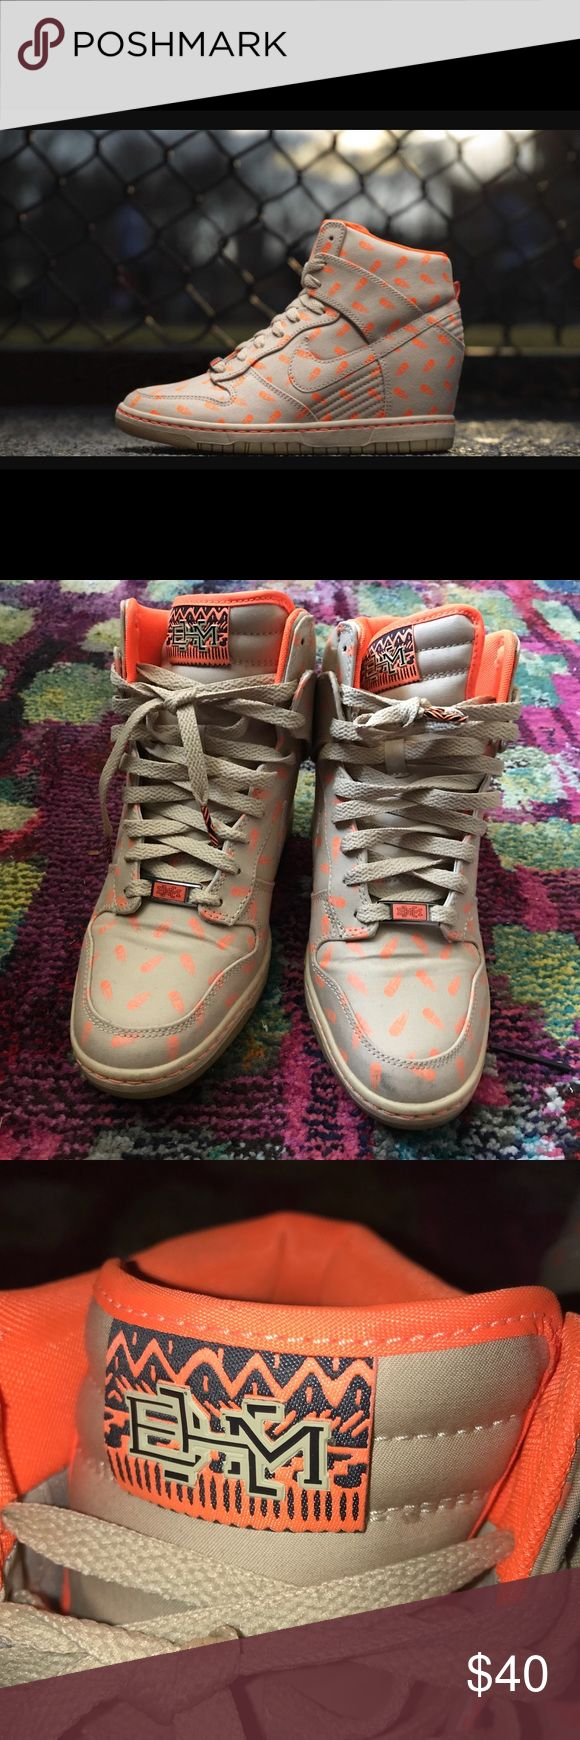 Nike BHM dunk wedges size 9 These size 9 Nike Dunk Wedges were dedicated to Serena Williams which is why they have zooming tennis balls all over the shoe. A definite show stopper. A couple scuffs, but in great wearable condition. Nike Shoes Sneakers